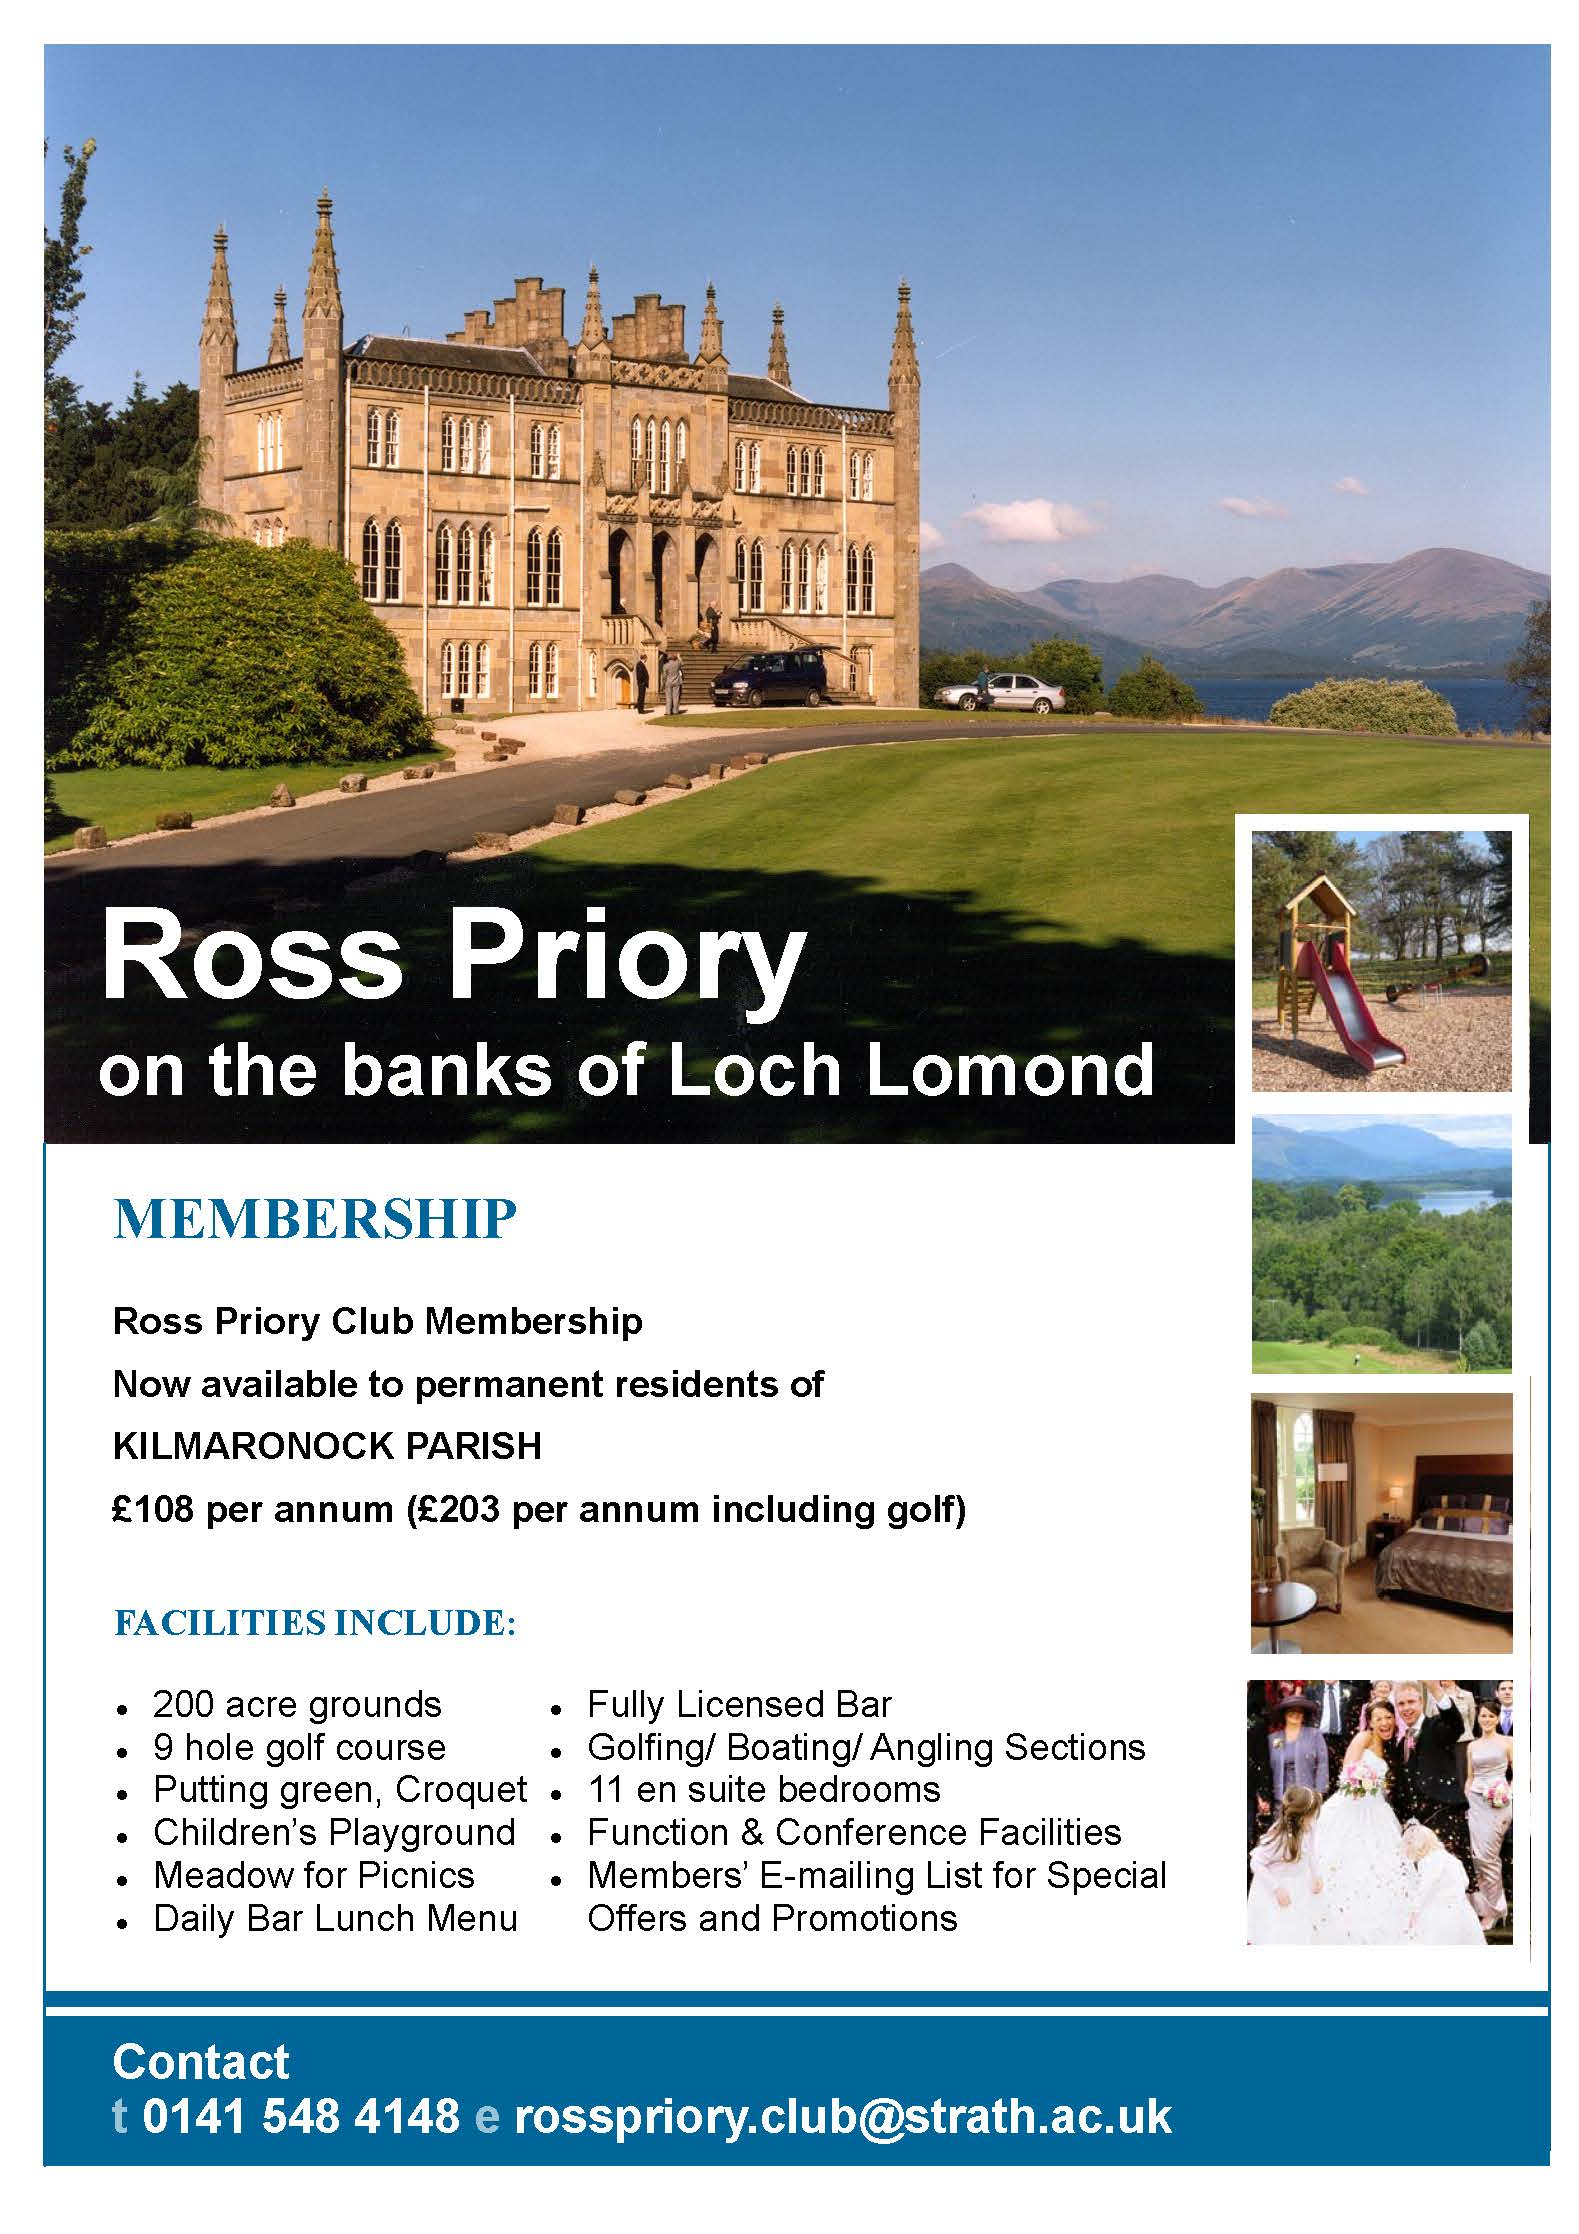 ross_priory_offer